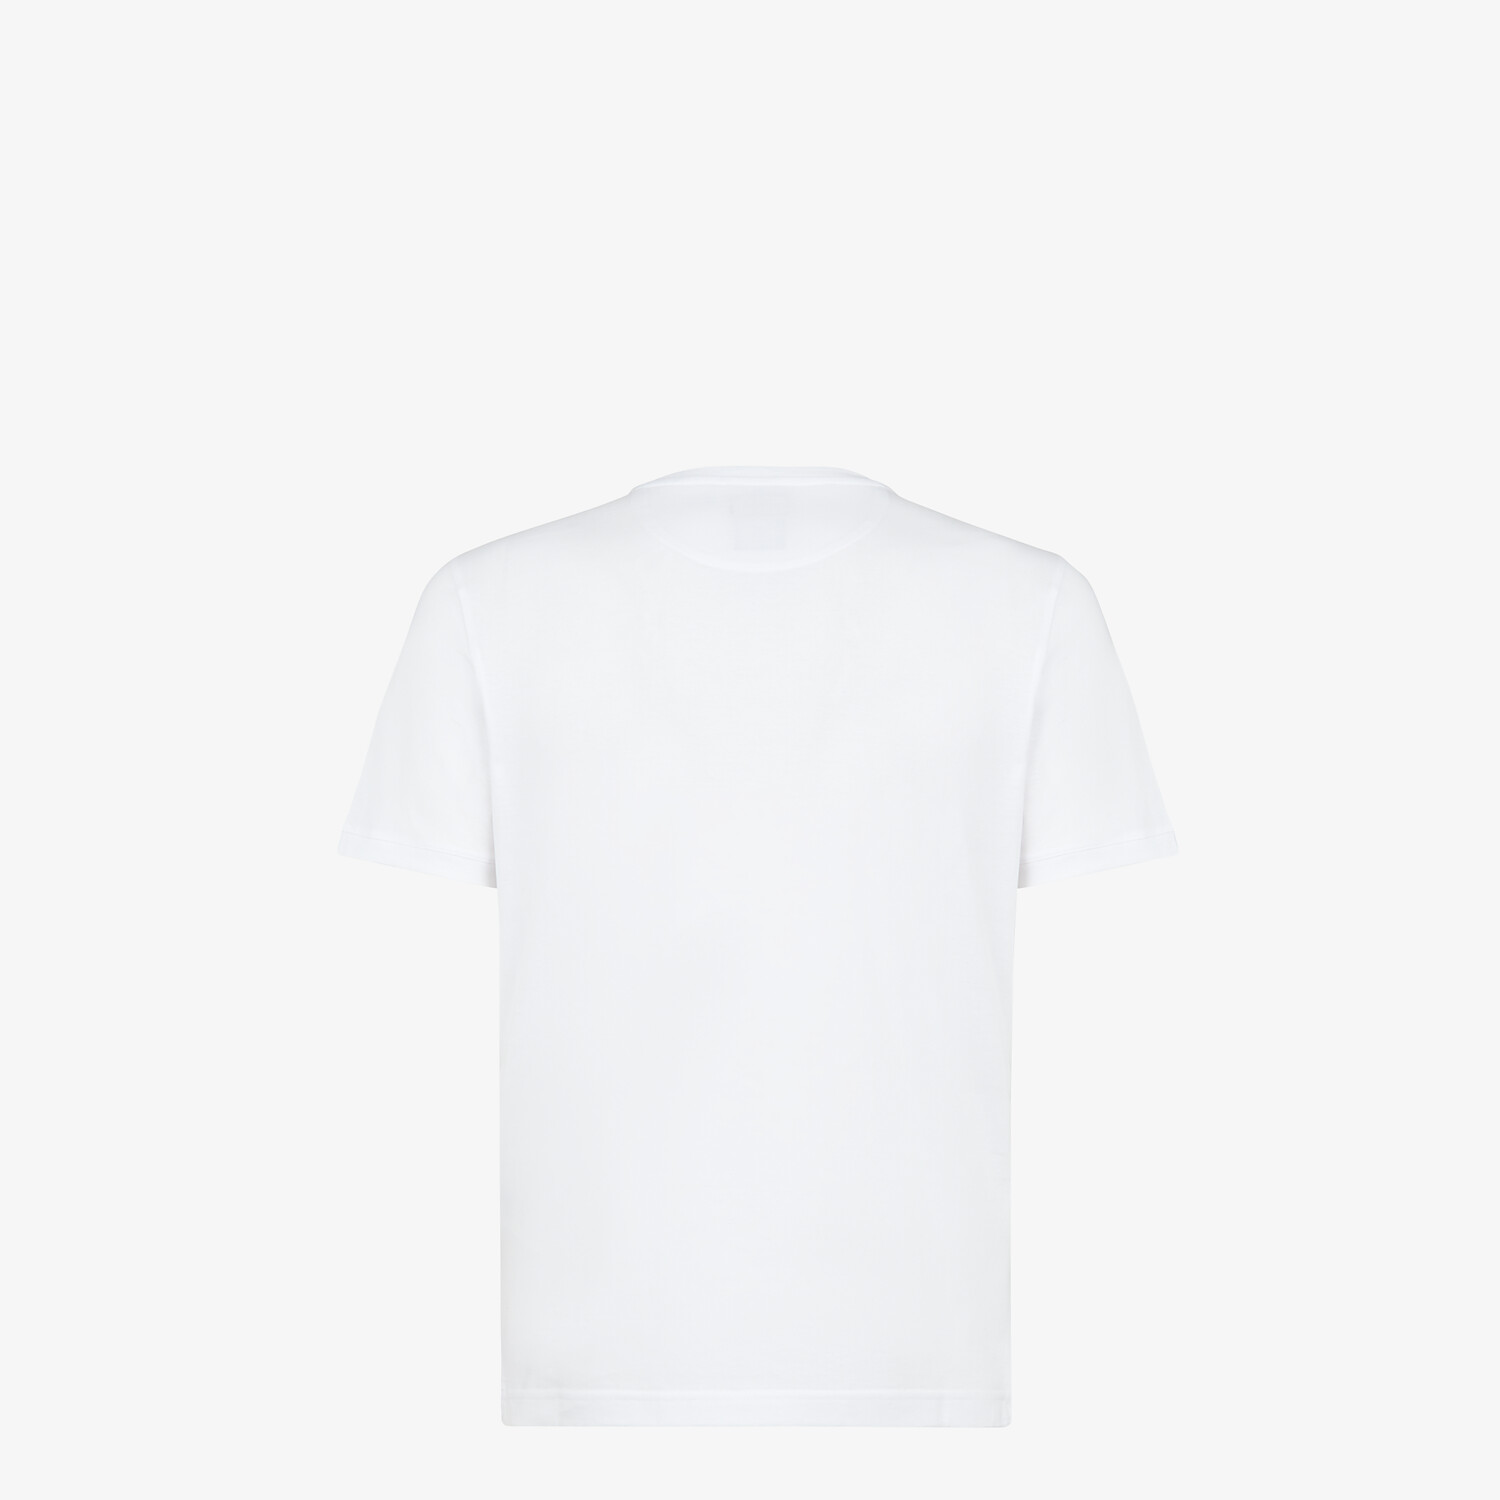 FENDI T-SHIRT - Fendi X Anrealage cotton T-shirt - view 2 detail